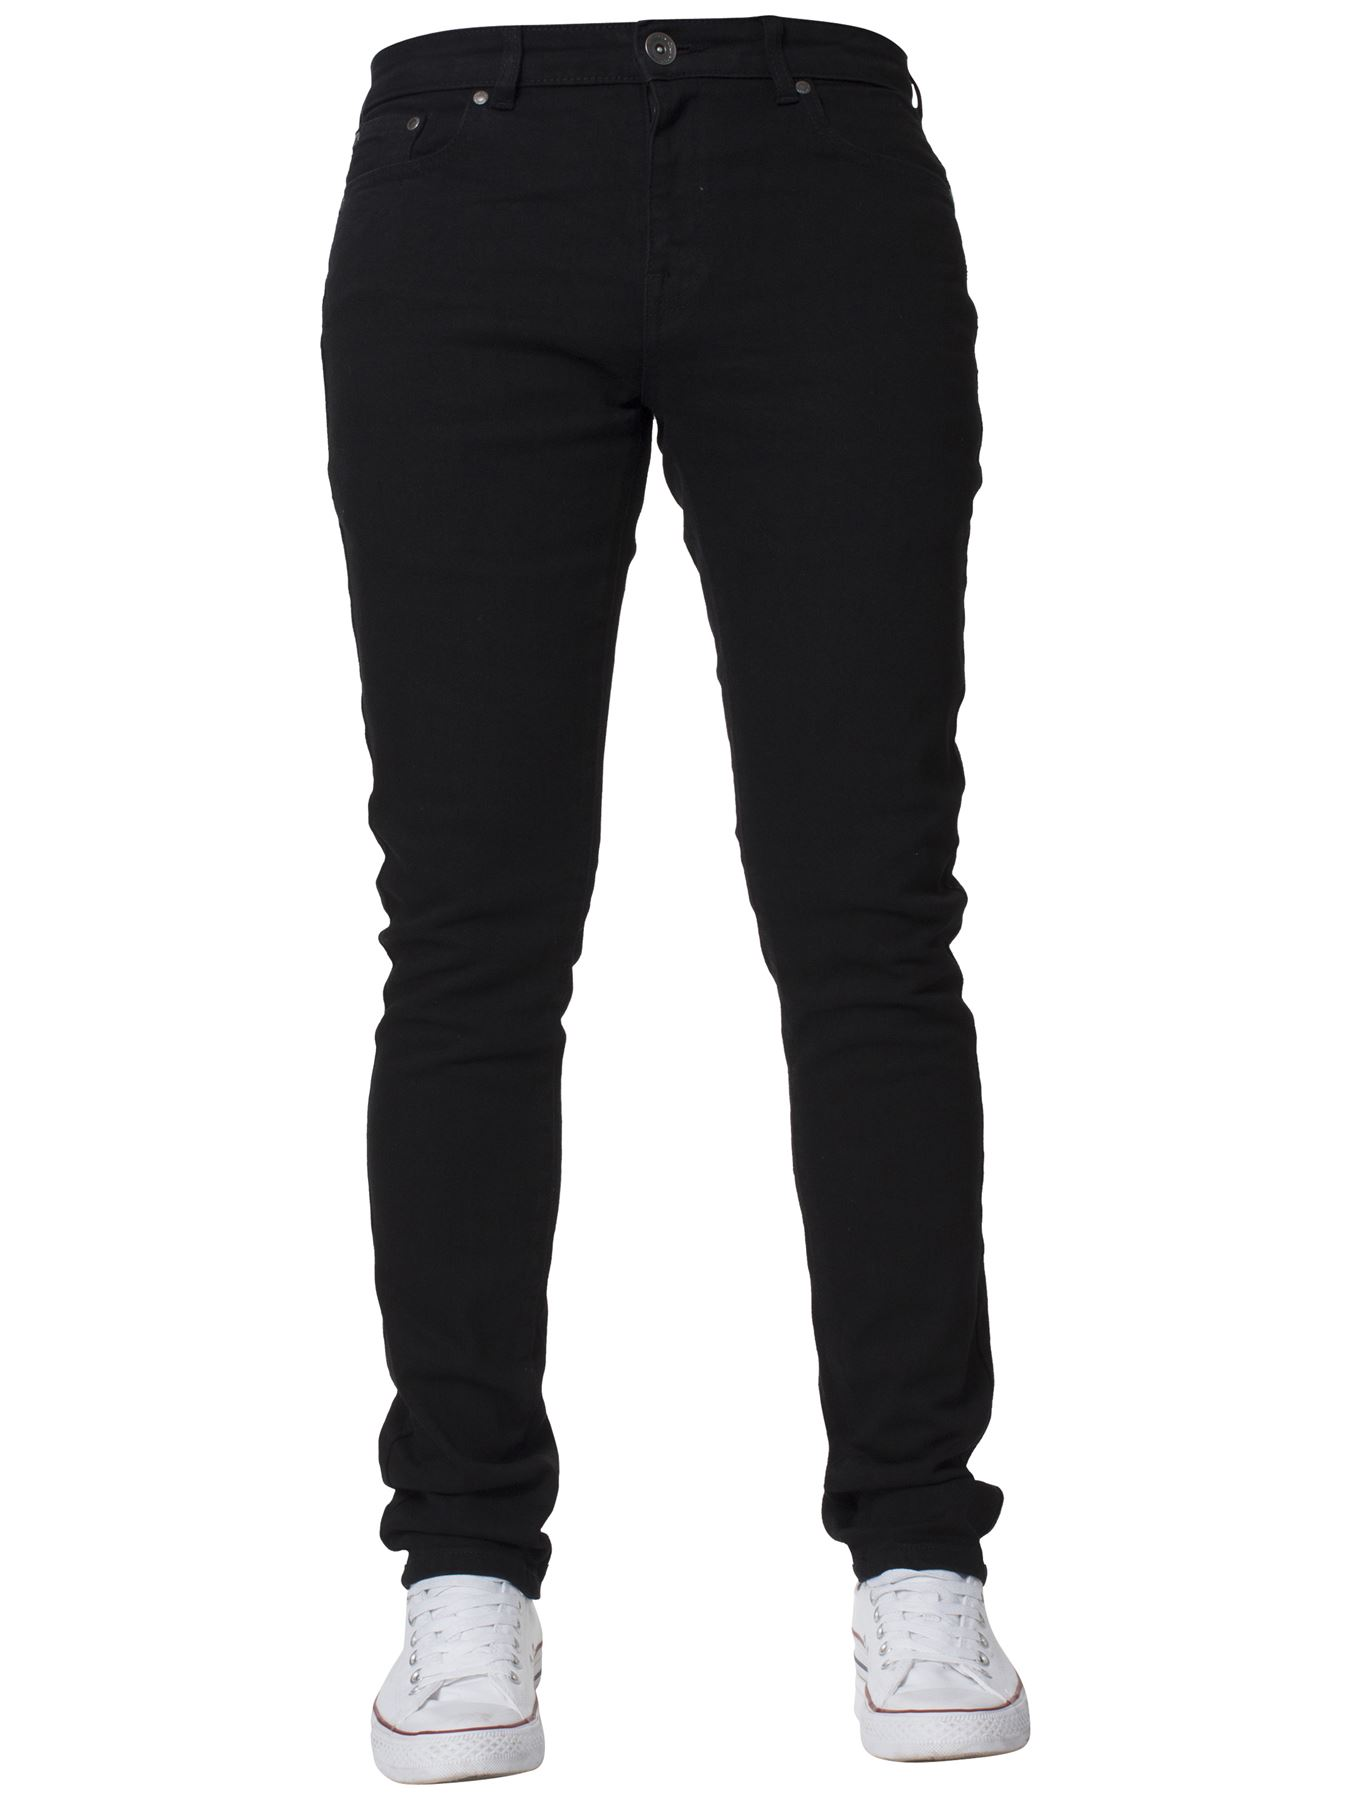 Mens-Skinny-Stretch-Jeans-Slim-Fit-Flex-Denim-Trousers-Pants-King-Sizes-by-Kruze thumbnail 4